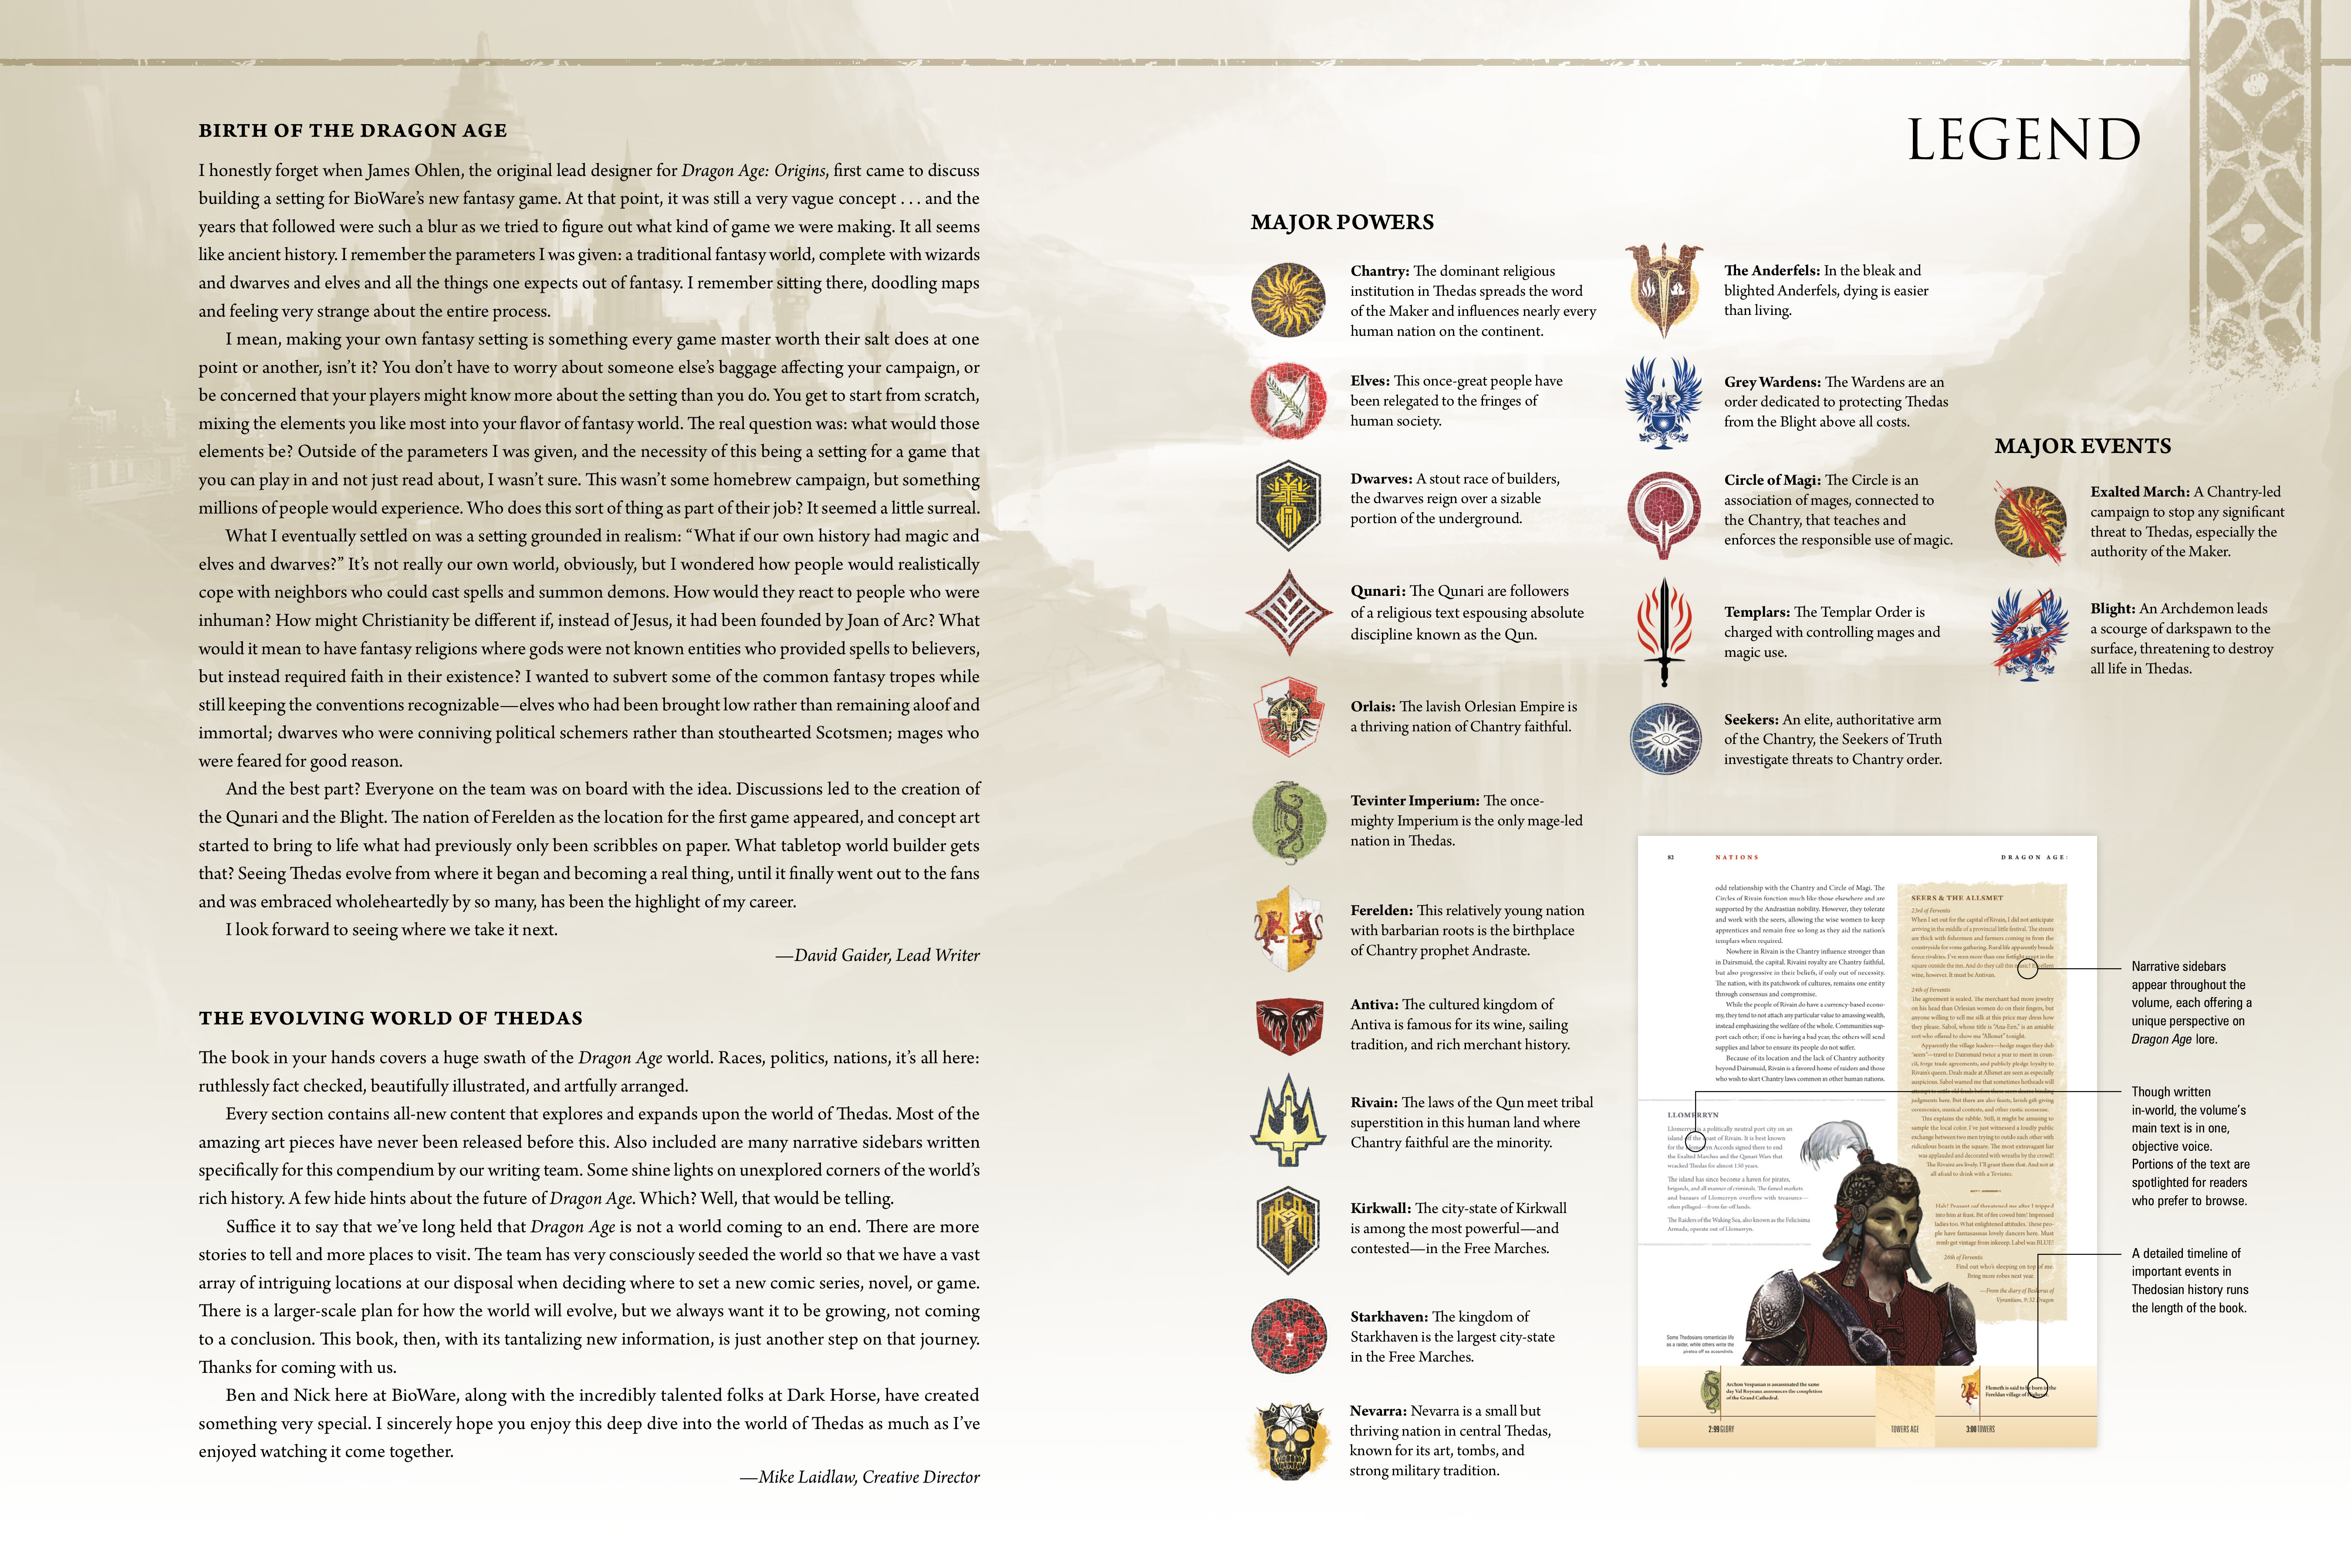 Read online Dragon Age: The World of Thedas comic -  Issue # TPB 1 - 6